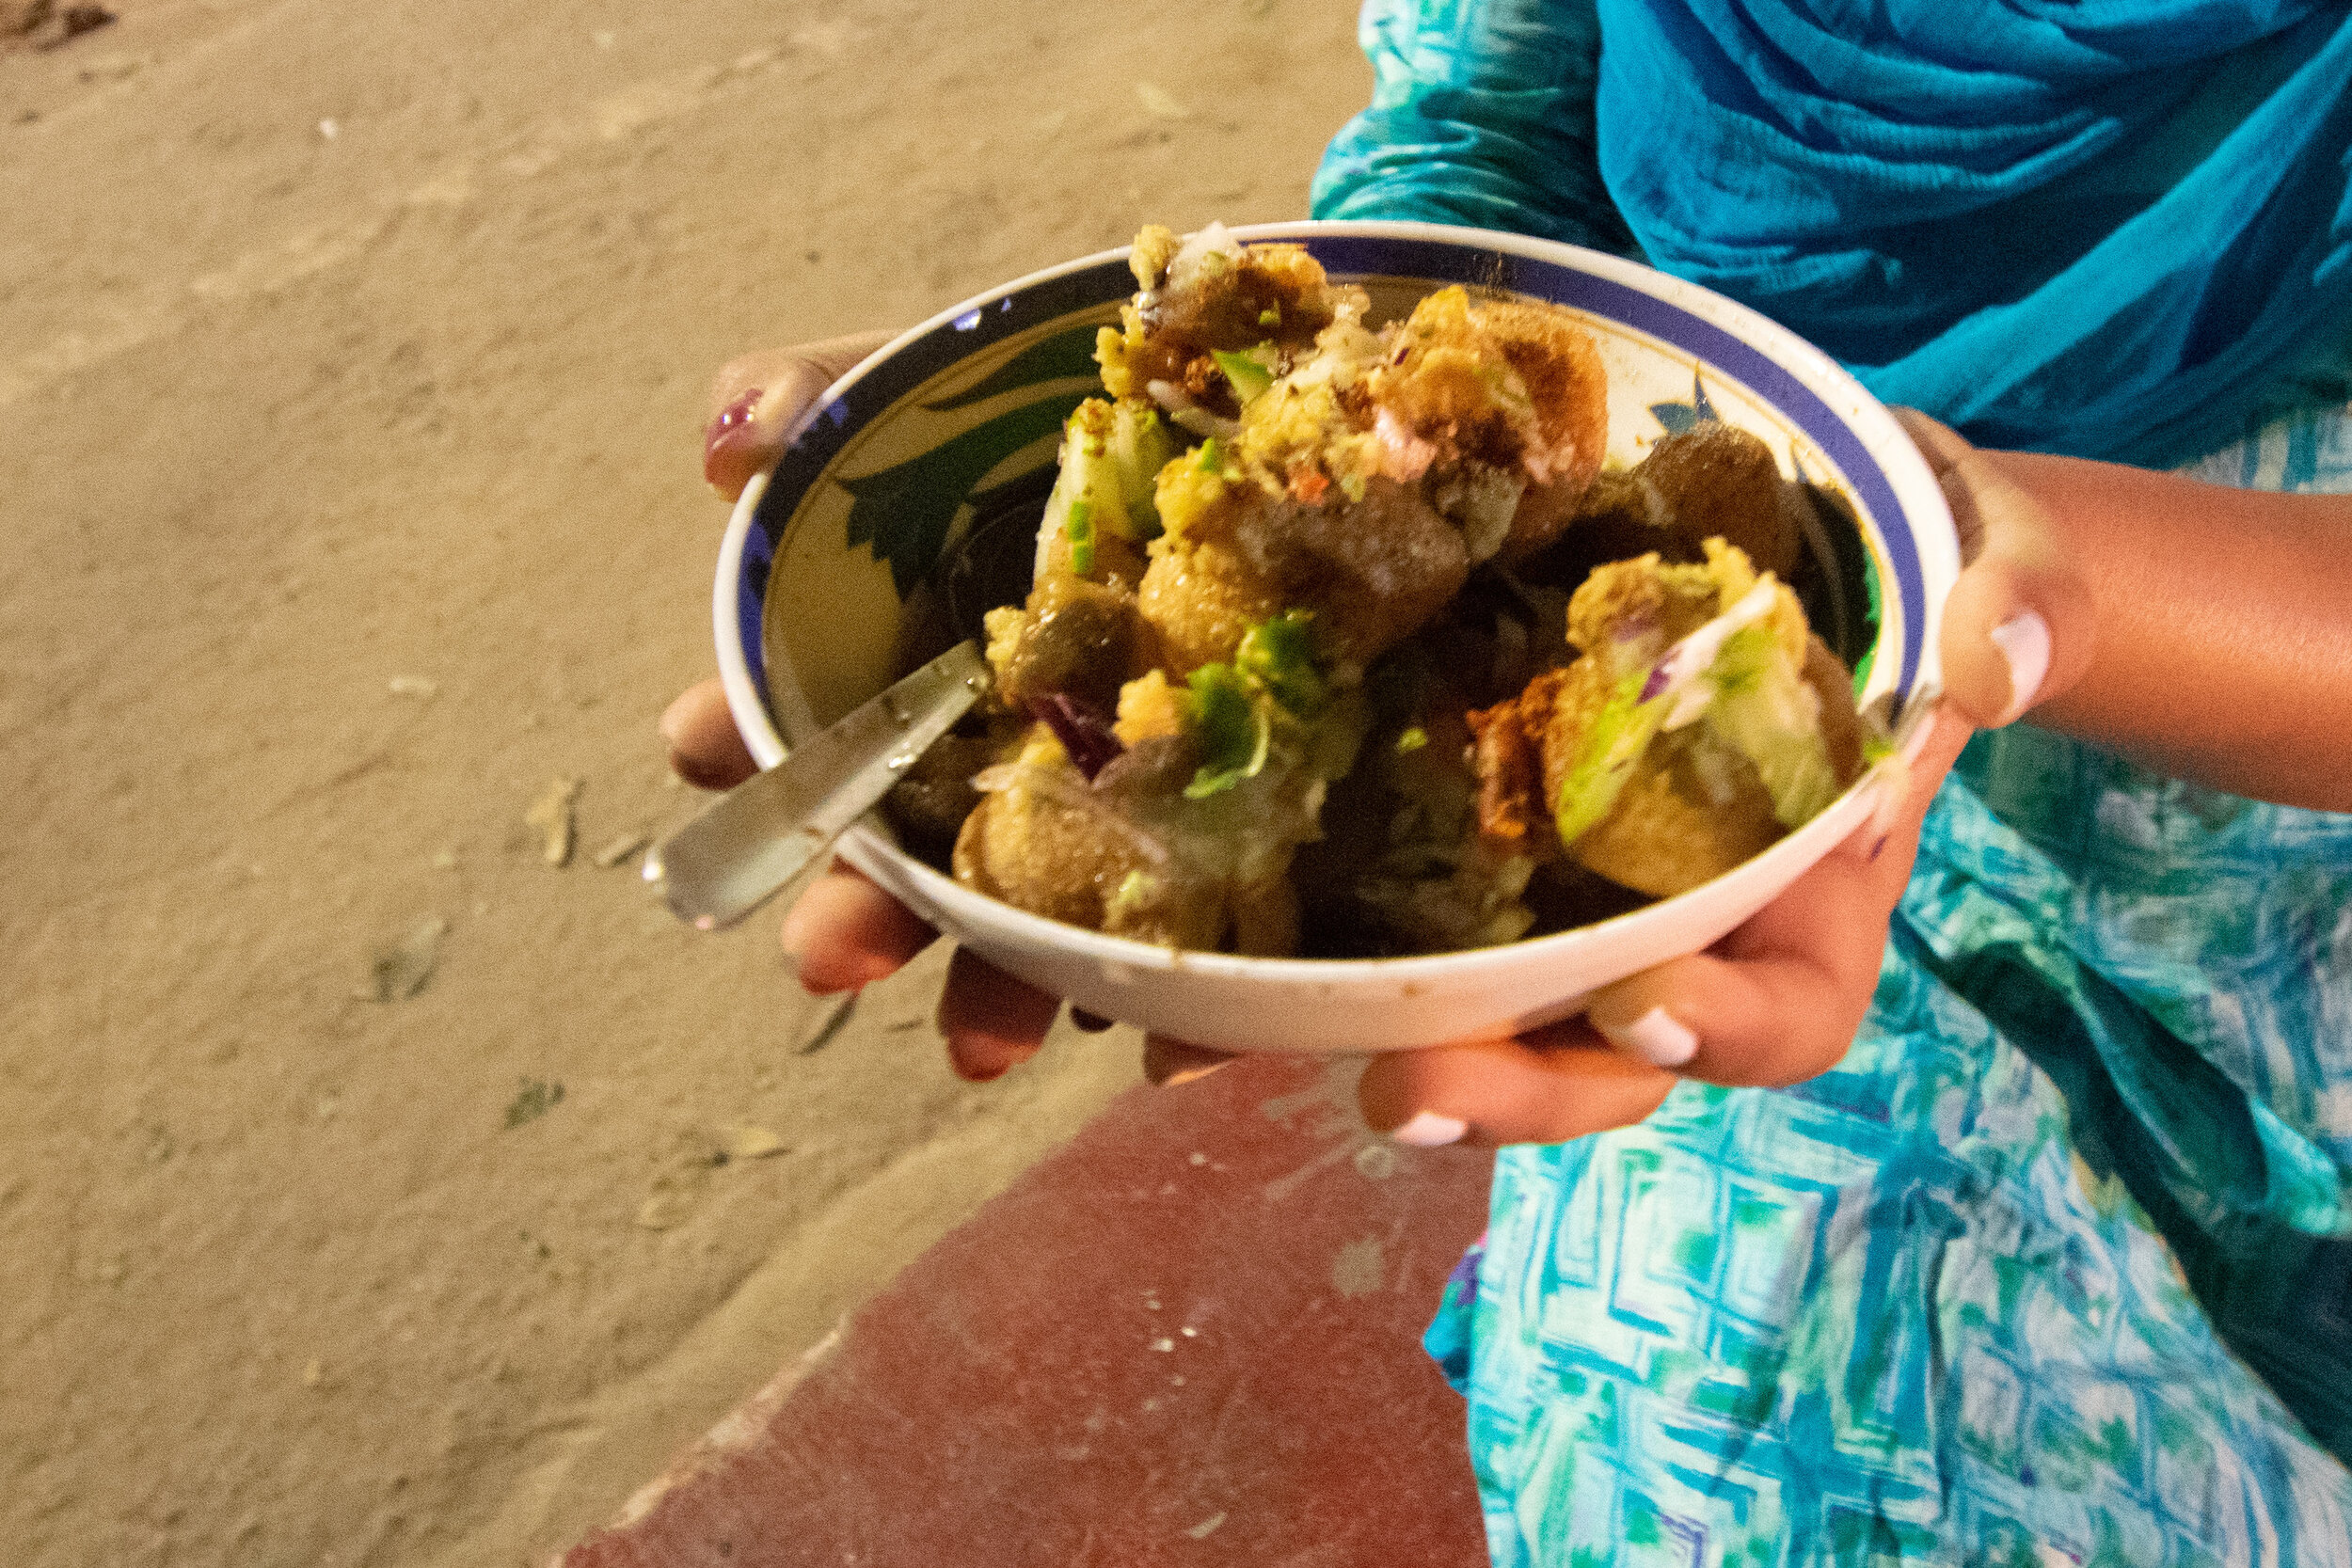 The #1 street food in Dhaka, a bowl of Fucka.